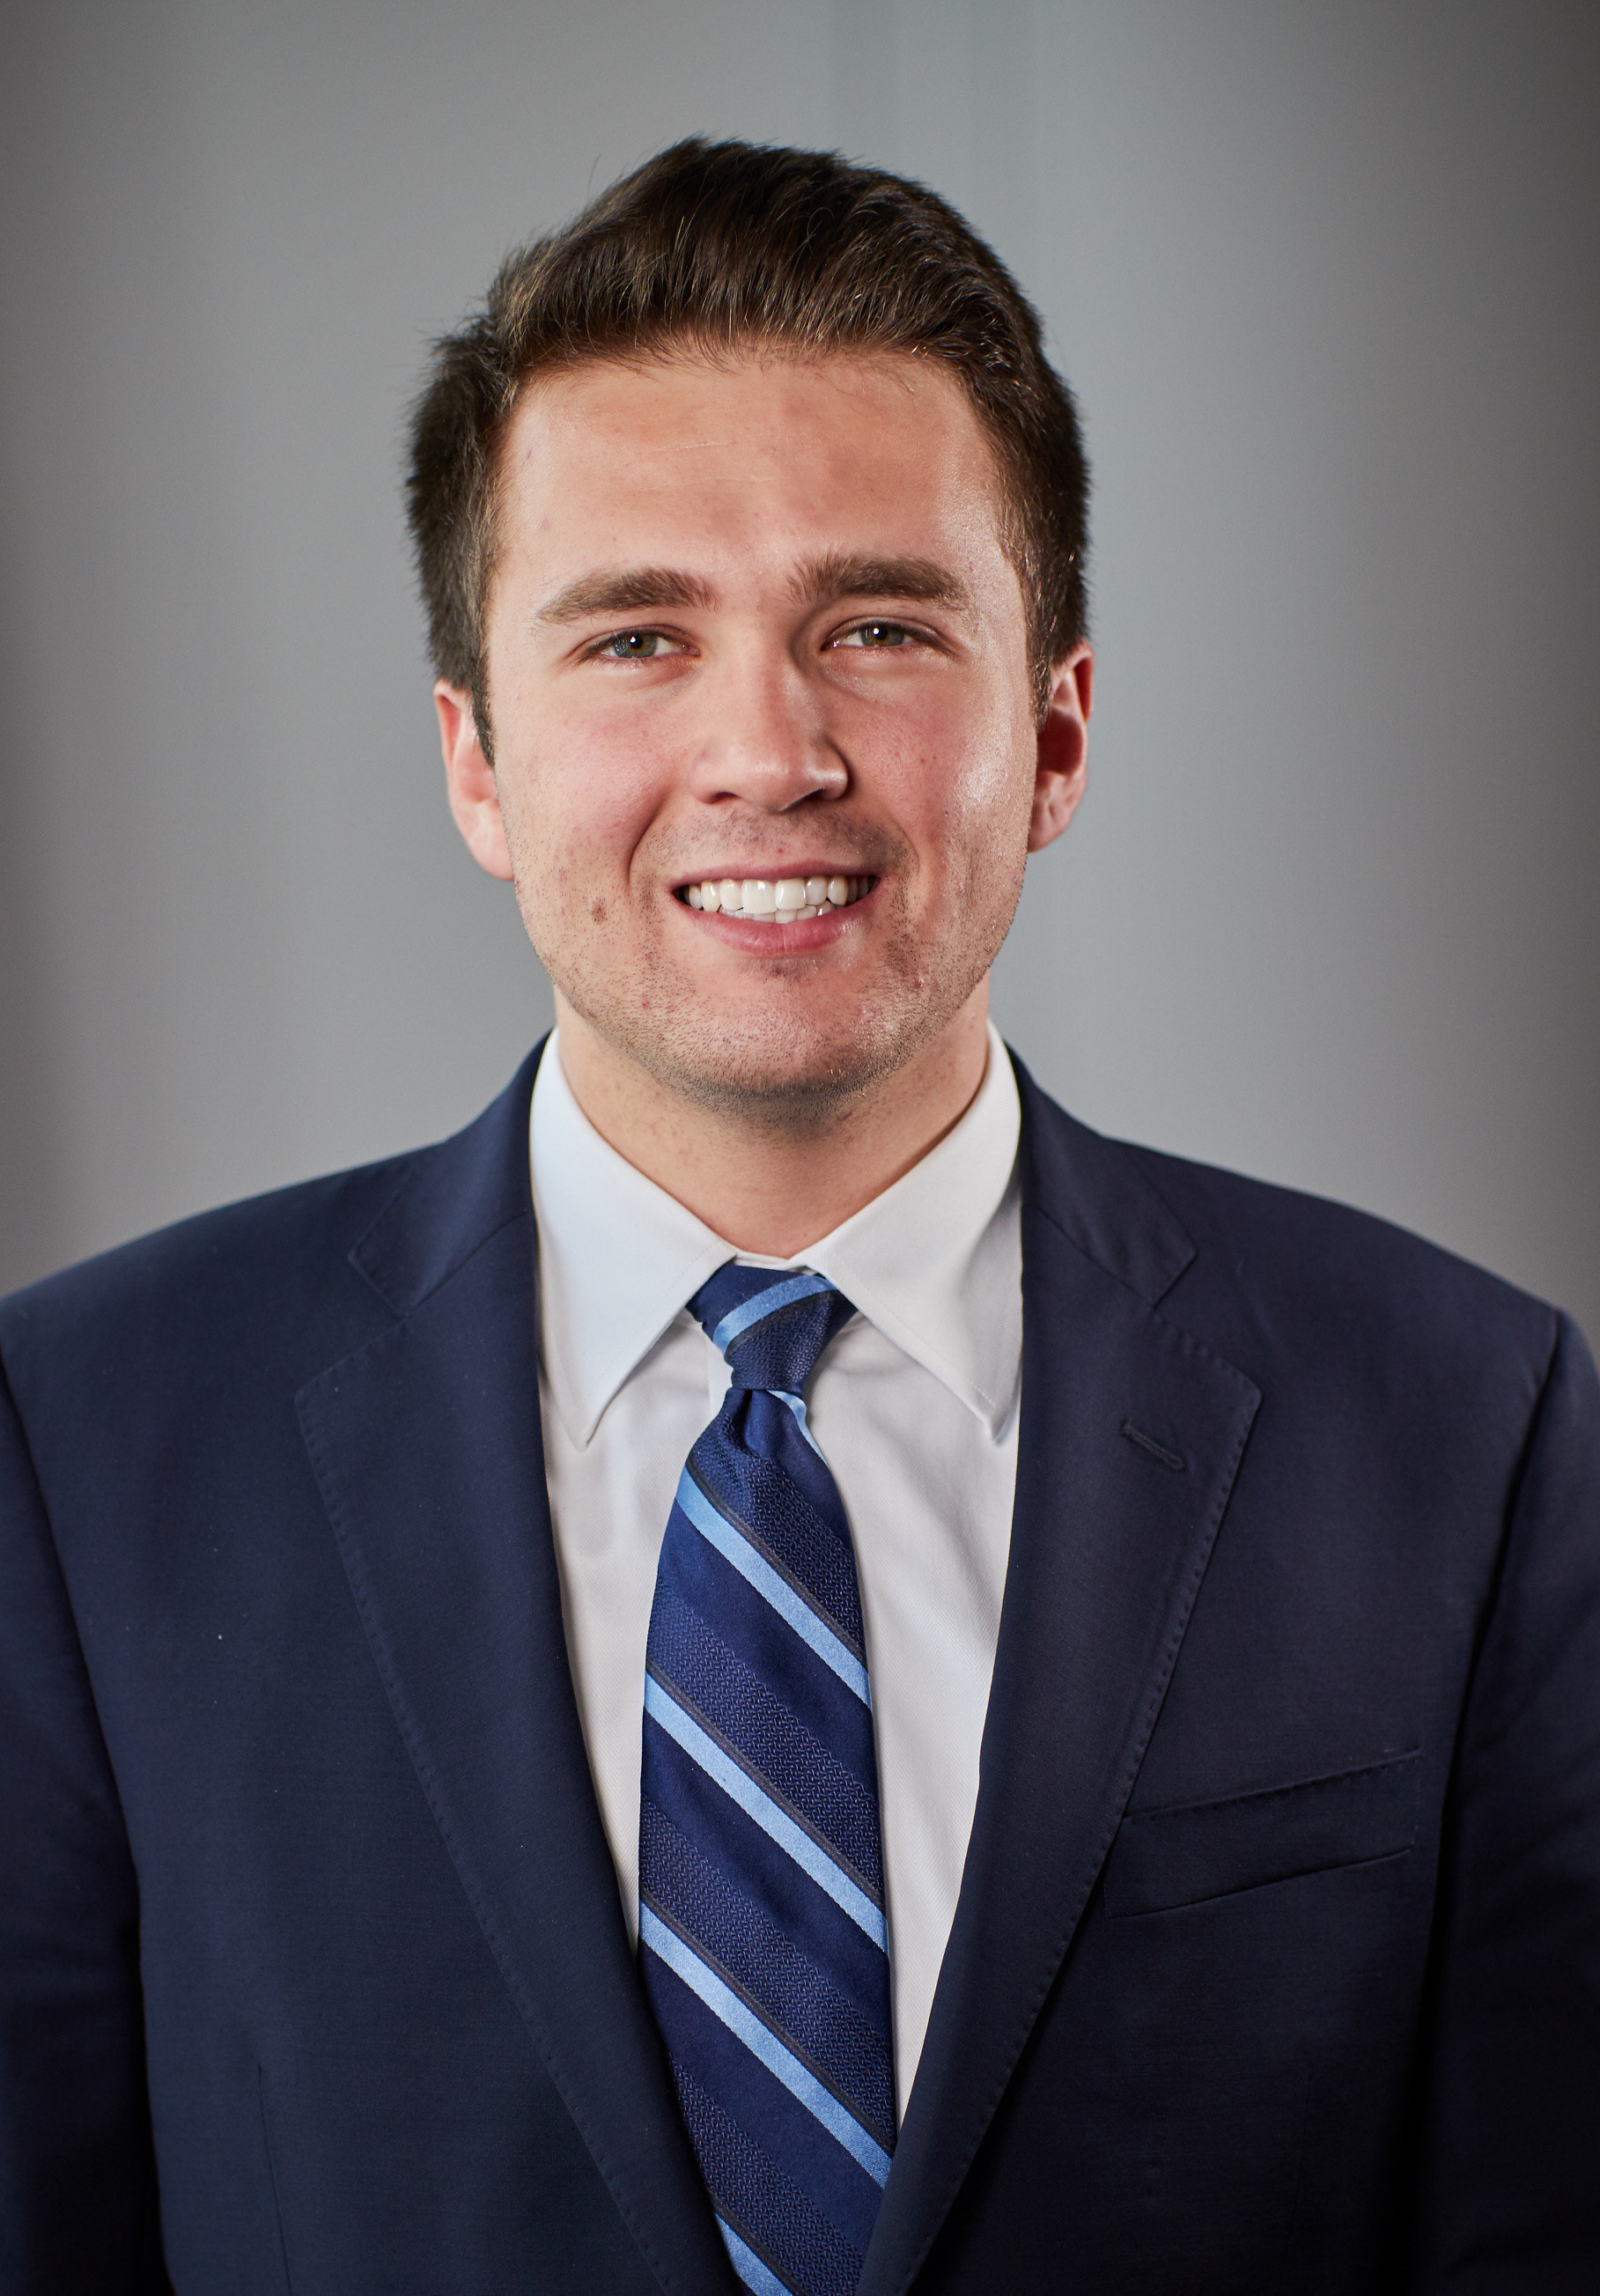 Patrick McKenna '20, President-Elect of the Gettysburg College Student Senate (File photo)